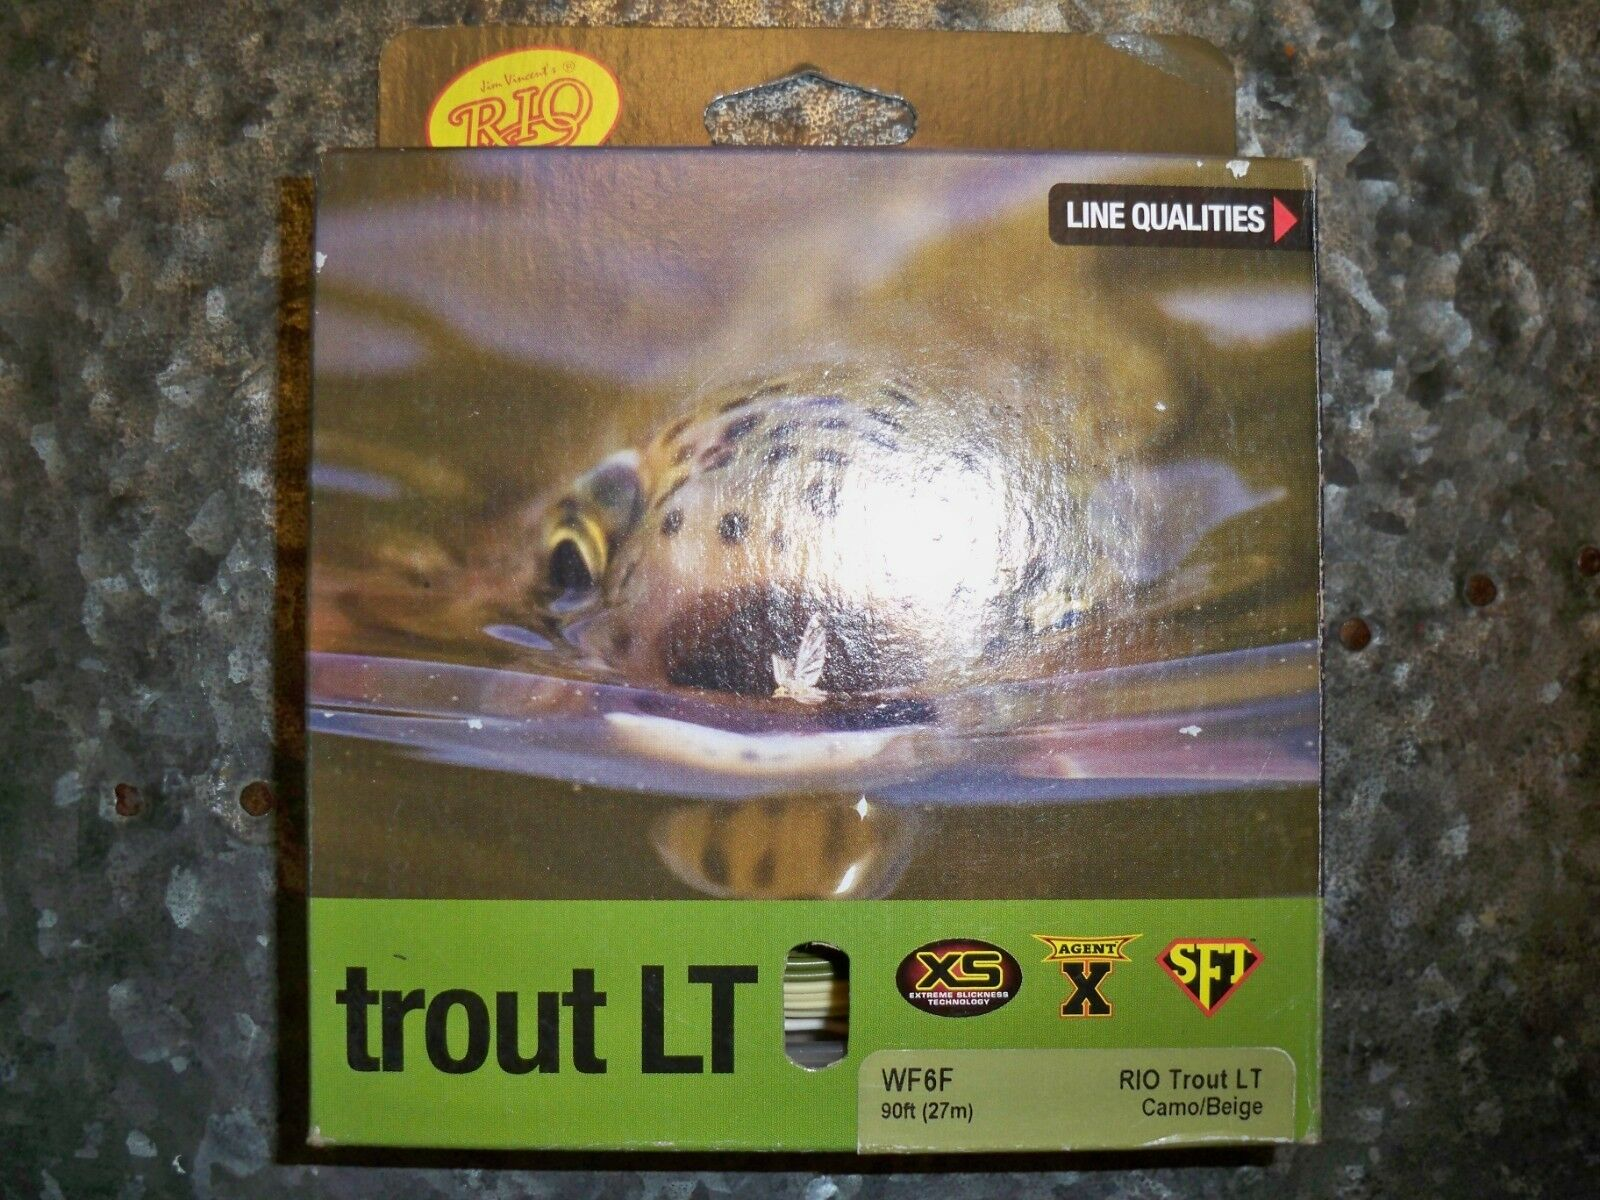 Rio  Trout LT WF6F Camo Beige 90 feet 27 meters NEW  most preferential